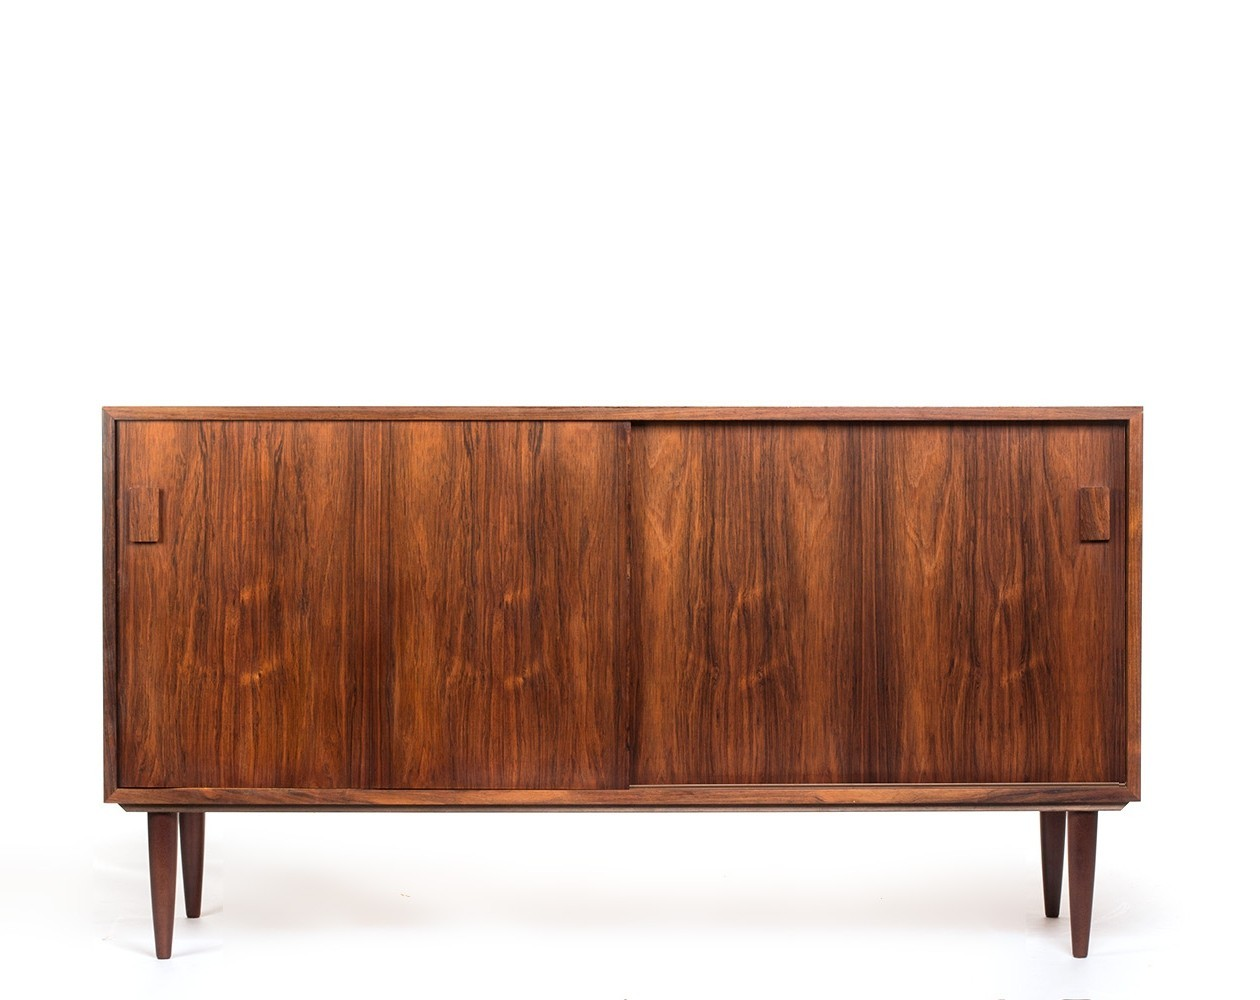 Vintage Sideboard Sliding Doors Vintage Danish Rosewood Sideboard With Sliding Doors By